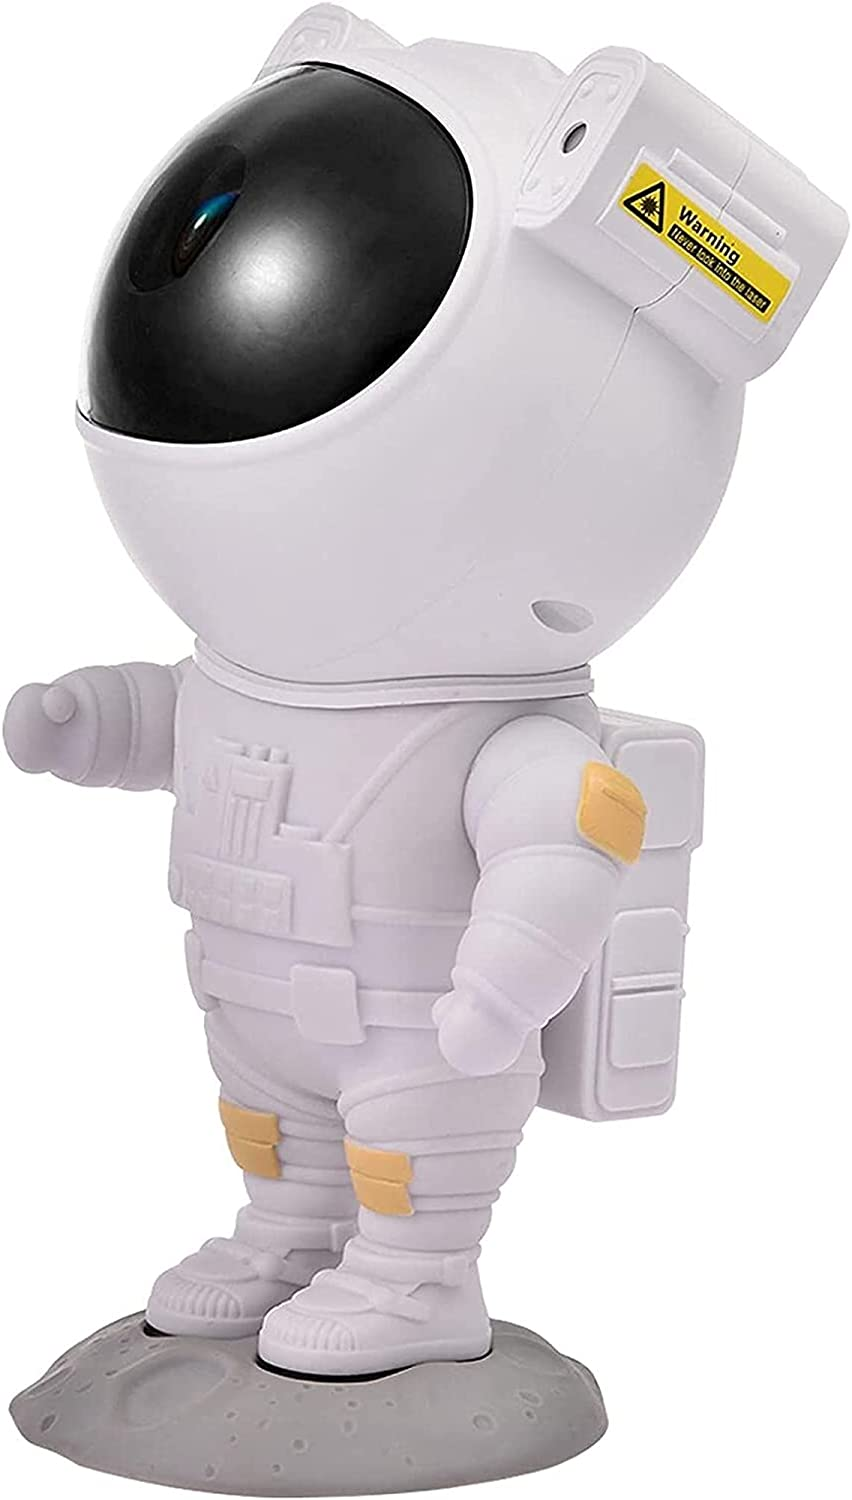 Lovedfgh Star Projector Astronaut Projection Lamp New mail order Popular overseas Starry Sky Lig